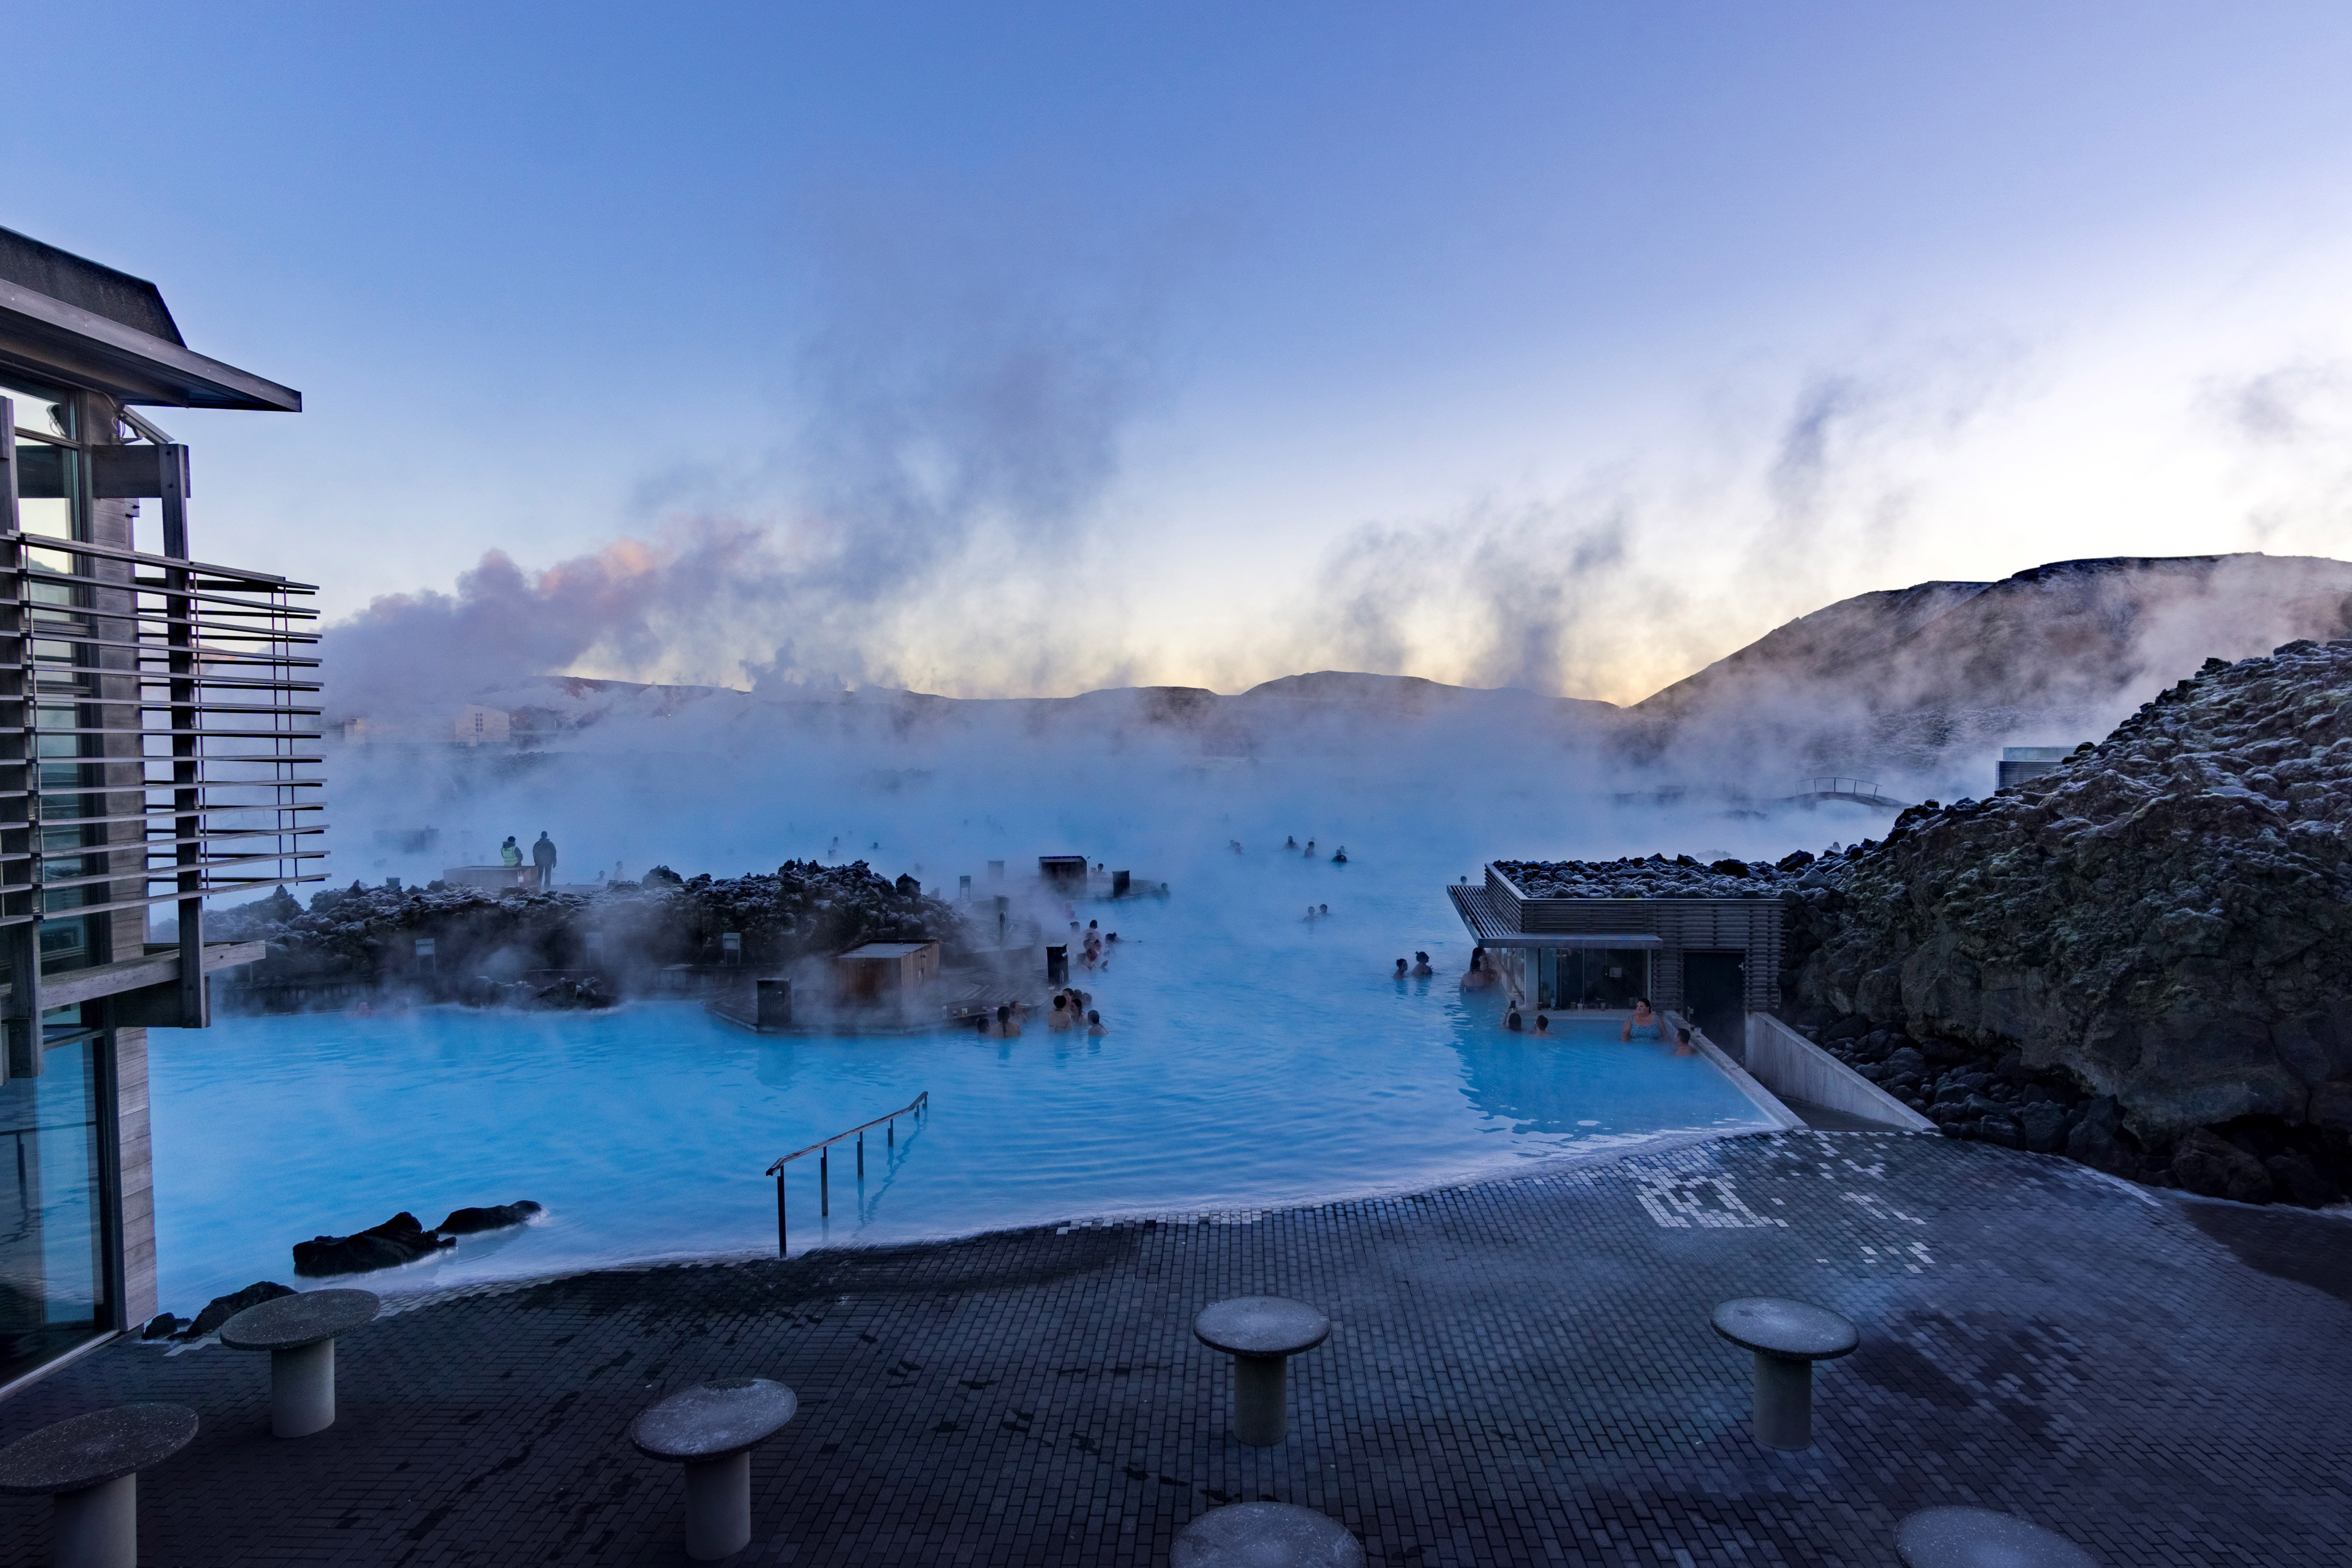 blue lagoon spa in Iceland things to do in Reykjavik